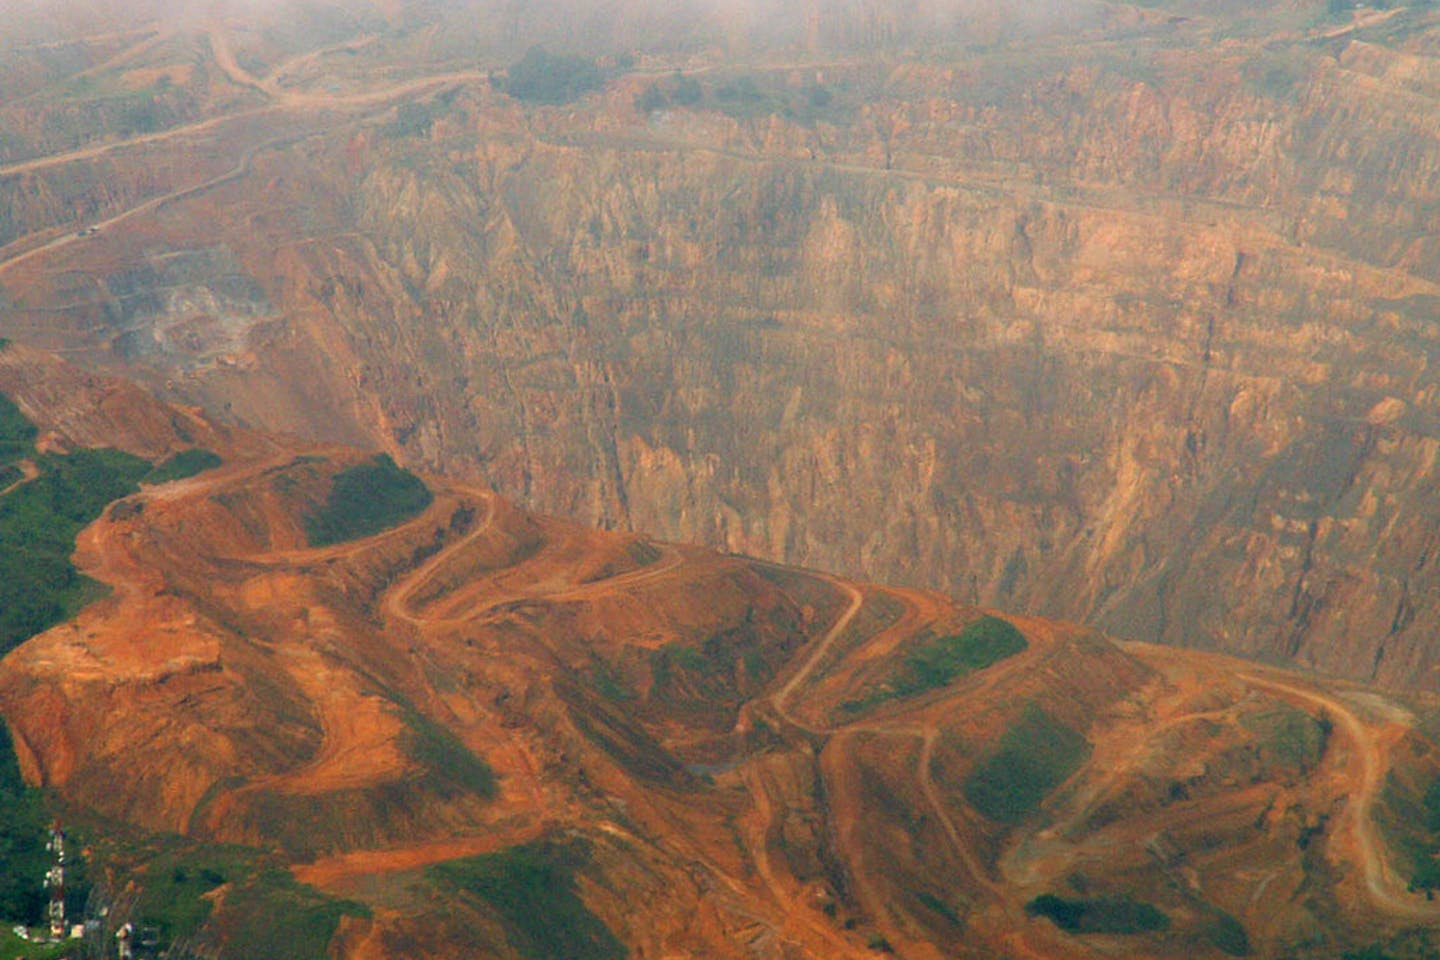 open pit mine in central Cebu, Philippines